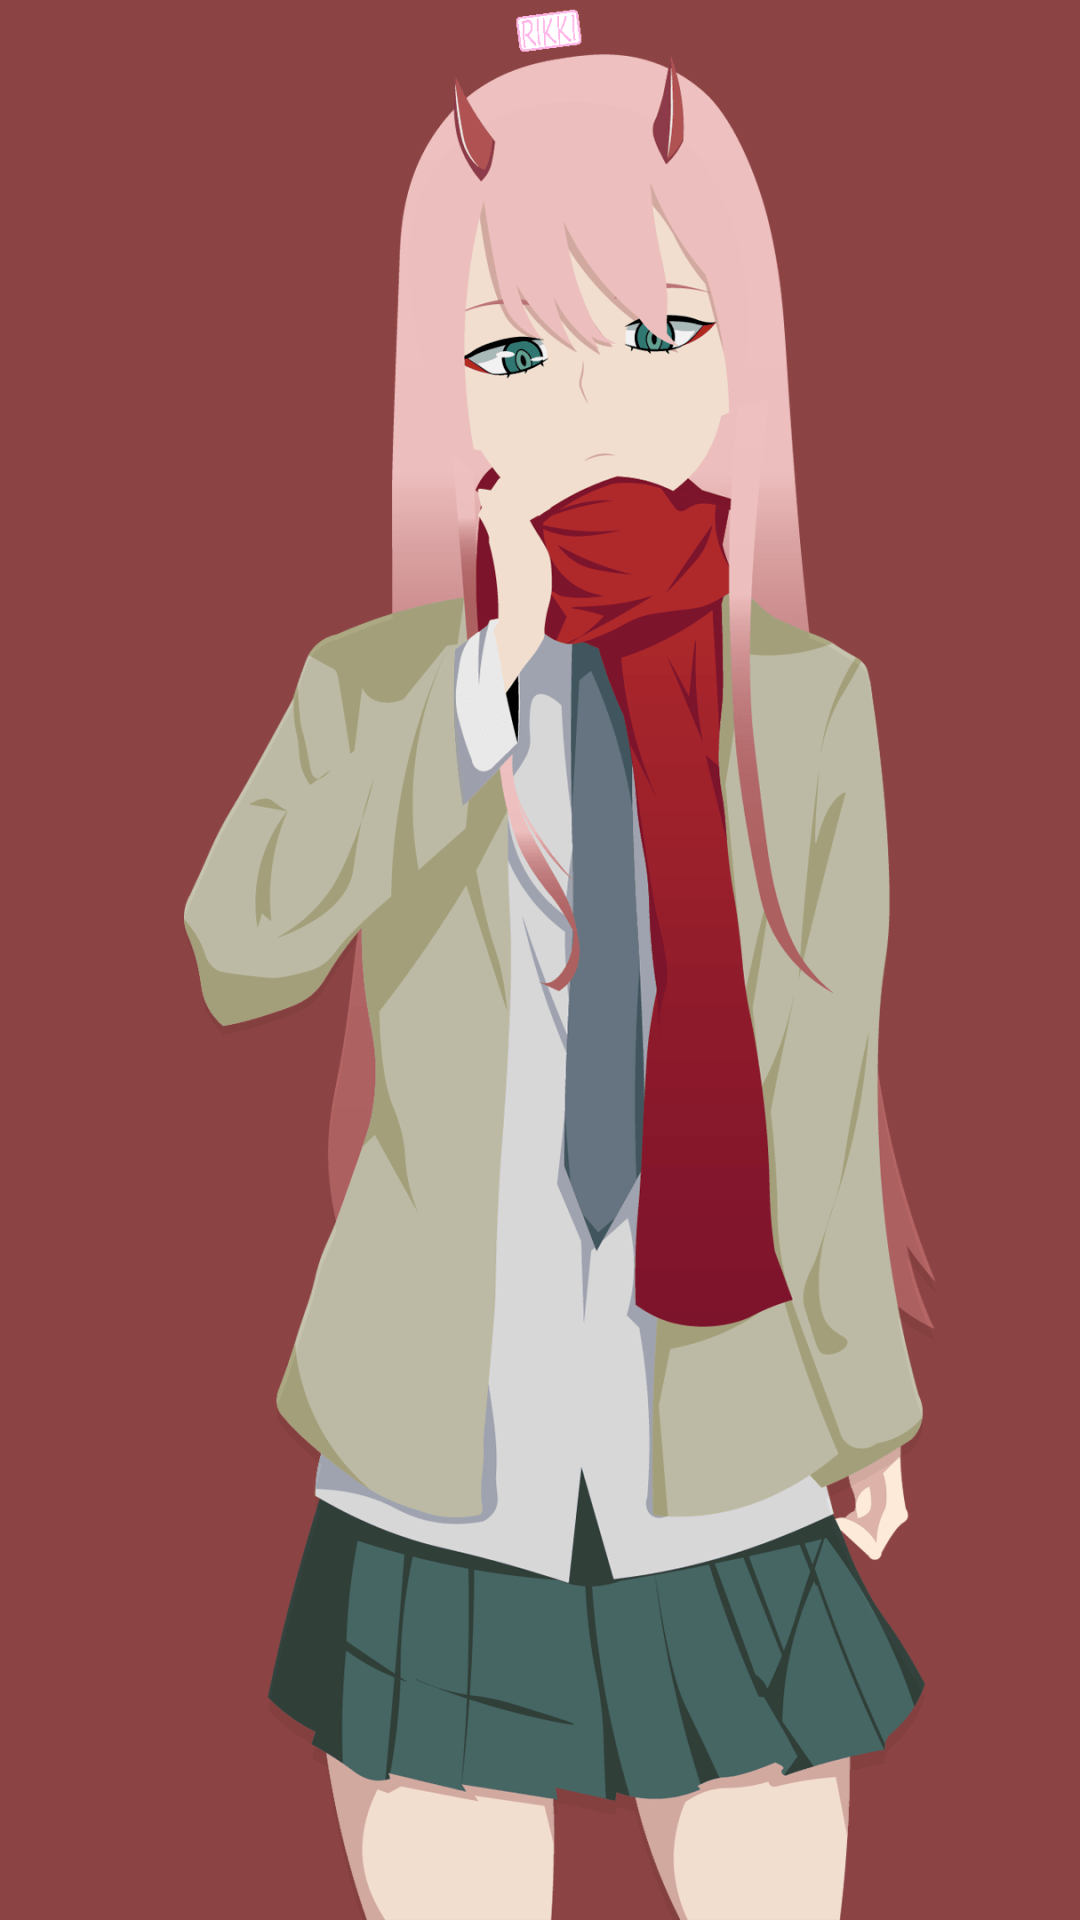 98 anime wallpapers itachi, so you want to put an anime wallpaper on your desktop background? Anime/Darling In The FranXX (1080x1920) Wallpaper ID ...